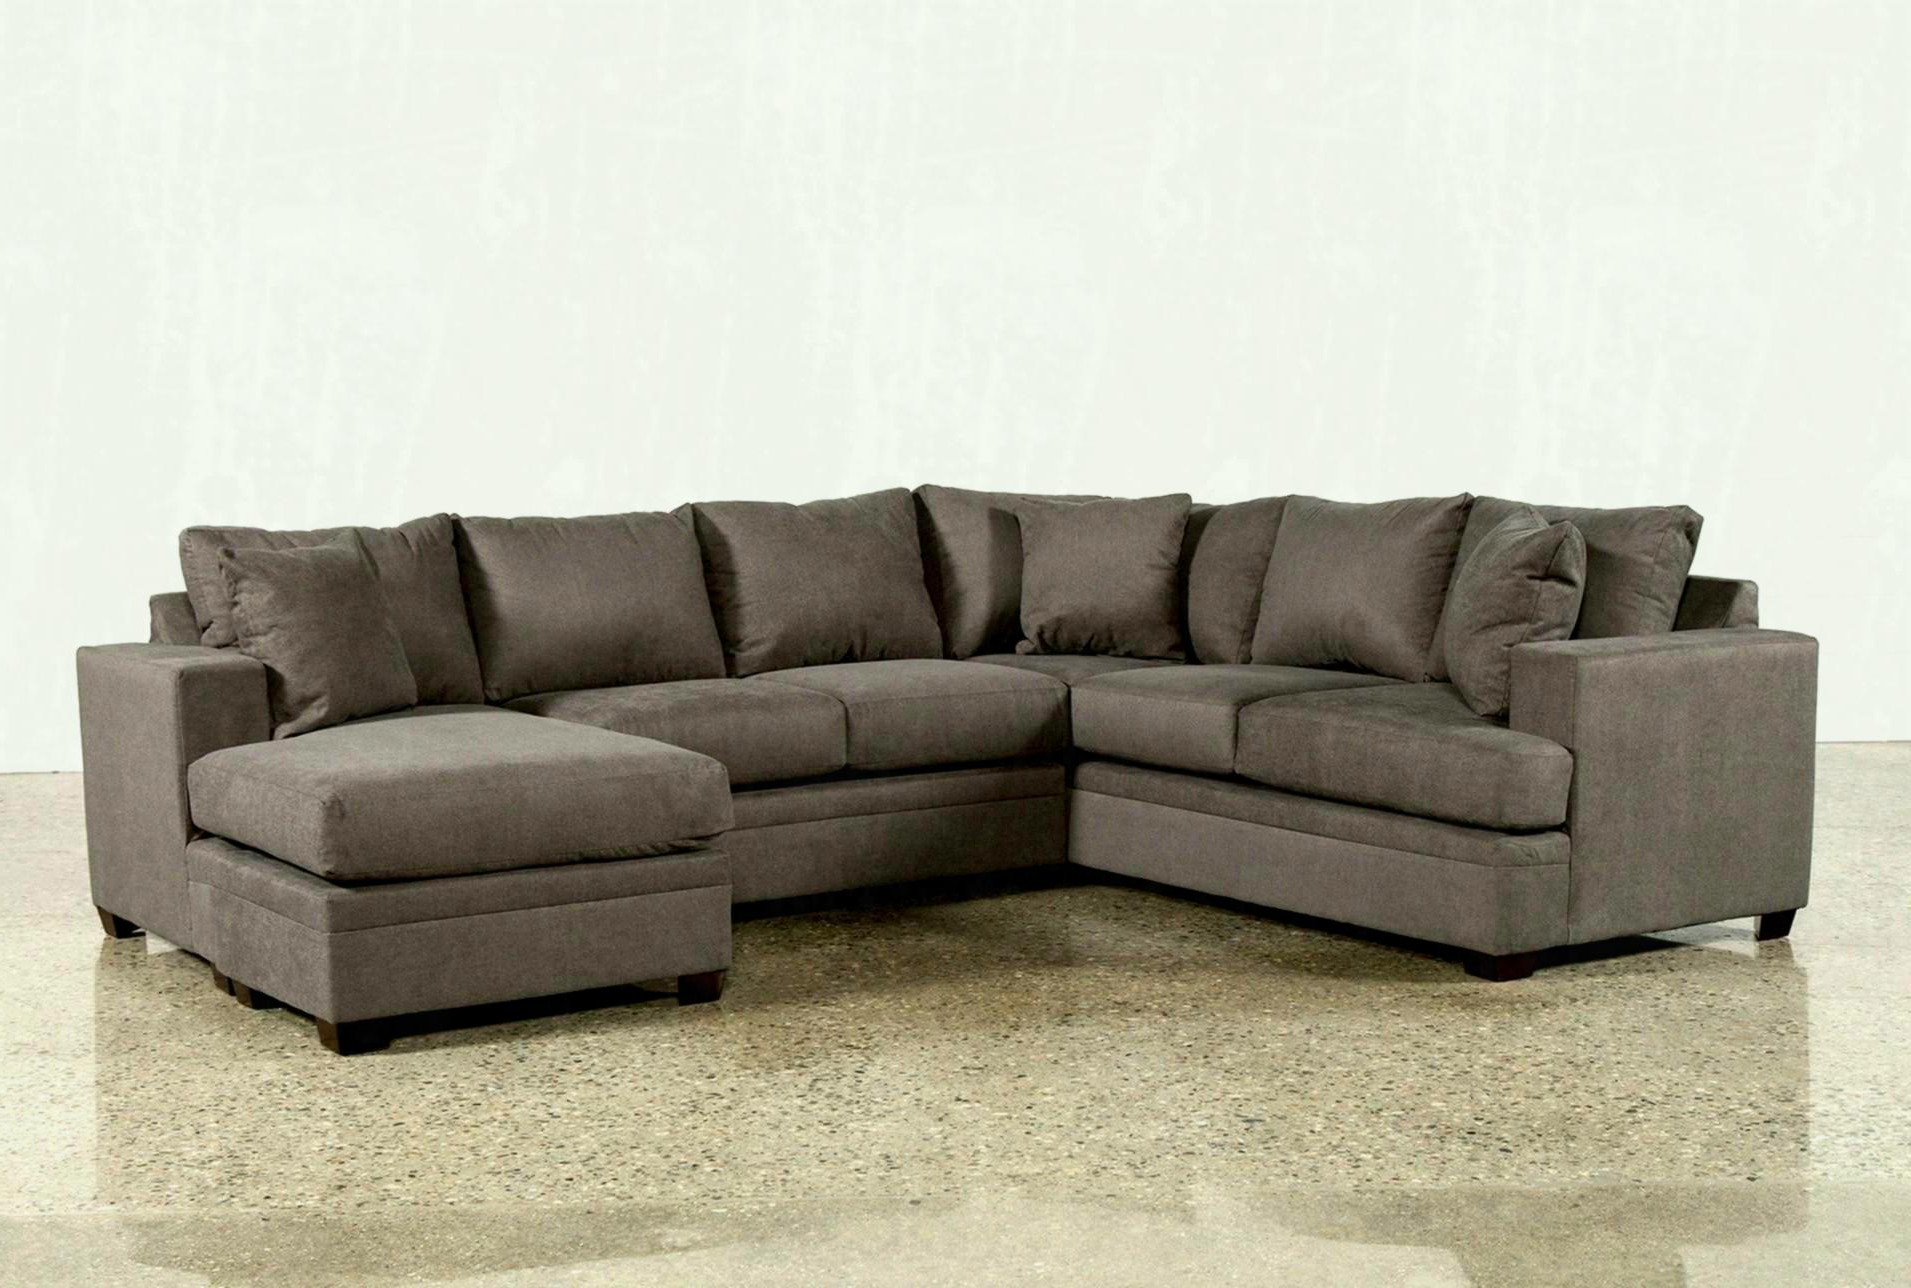 Widely Used Lucy Grey 2 Piece Sectionals With Laf Chaise For Added To Cart Lucy Dark Grey Piece Sectional W Raf Chaise Living (View 20 of 20)